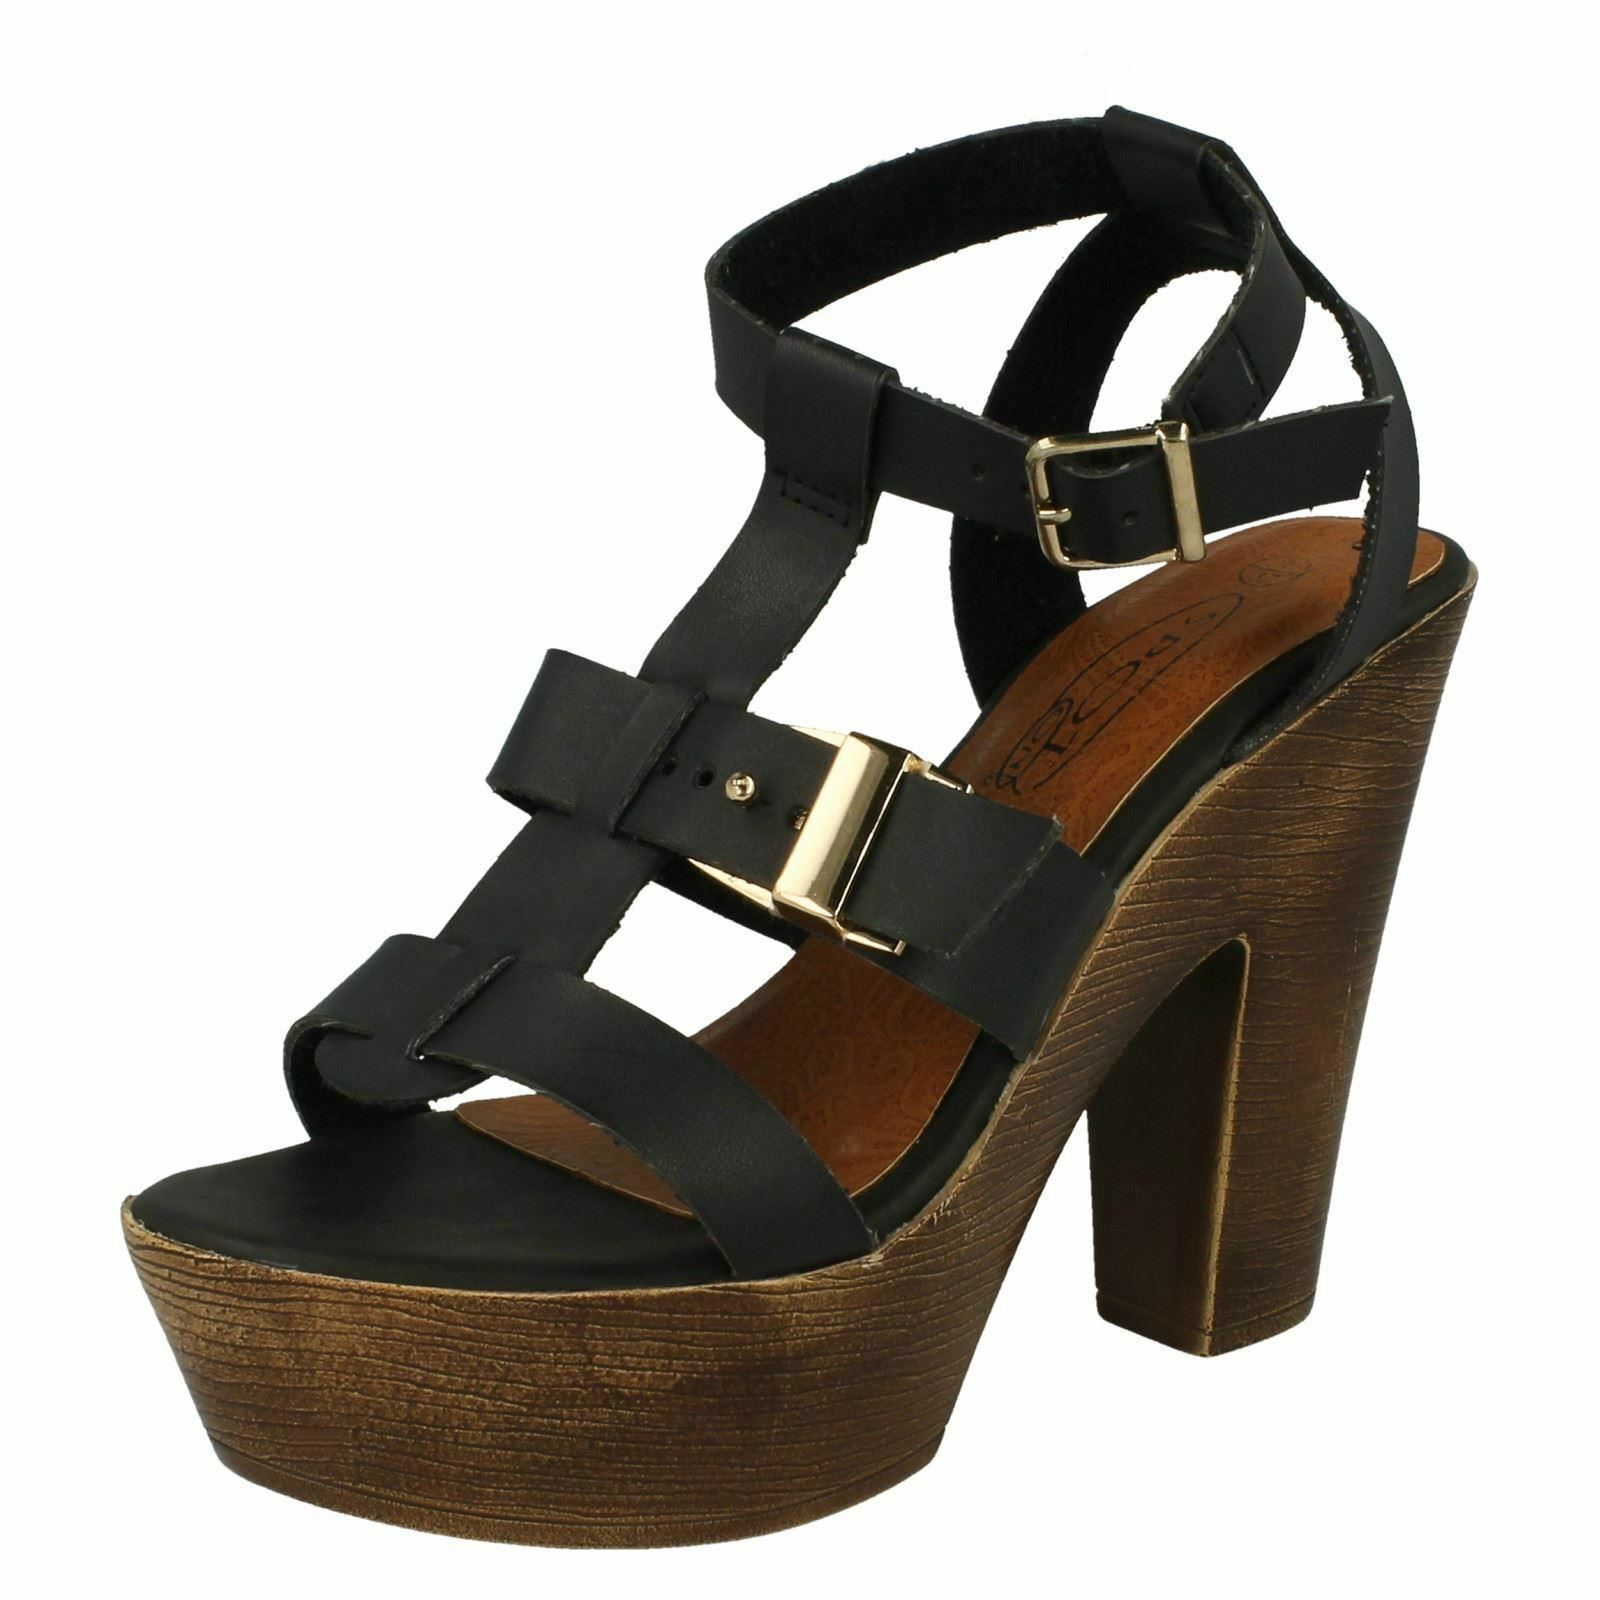 Ladies F10454 On Peep Toe T-Bar Sandals by Spot On F10454 - Sale Now 189780